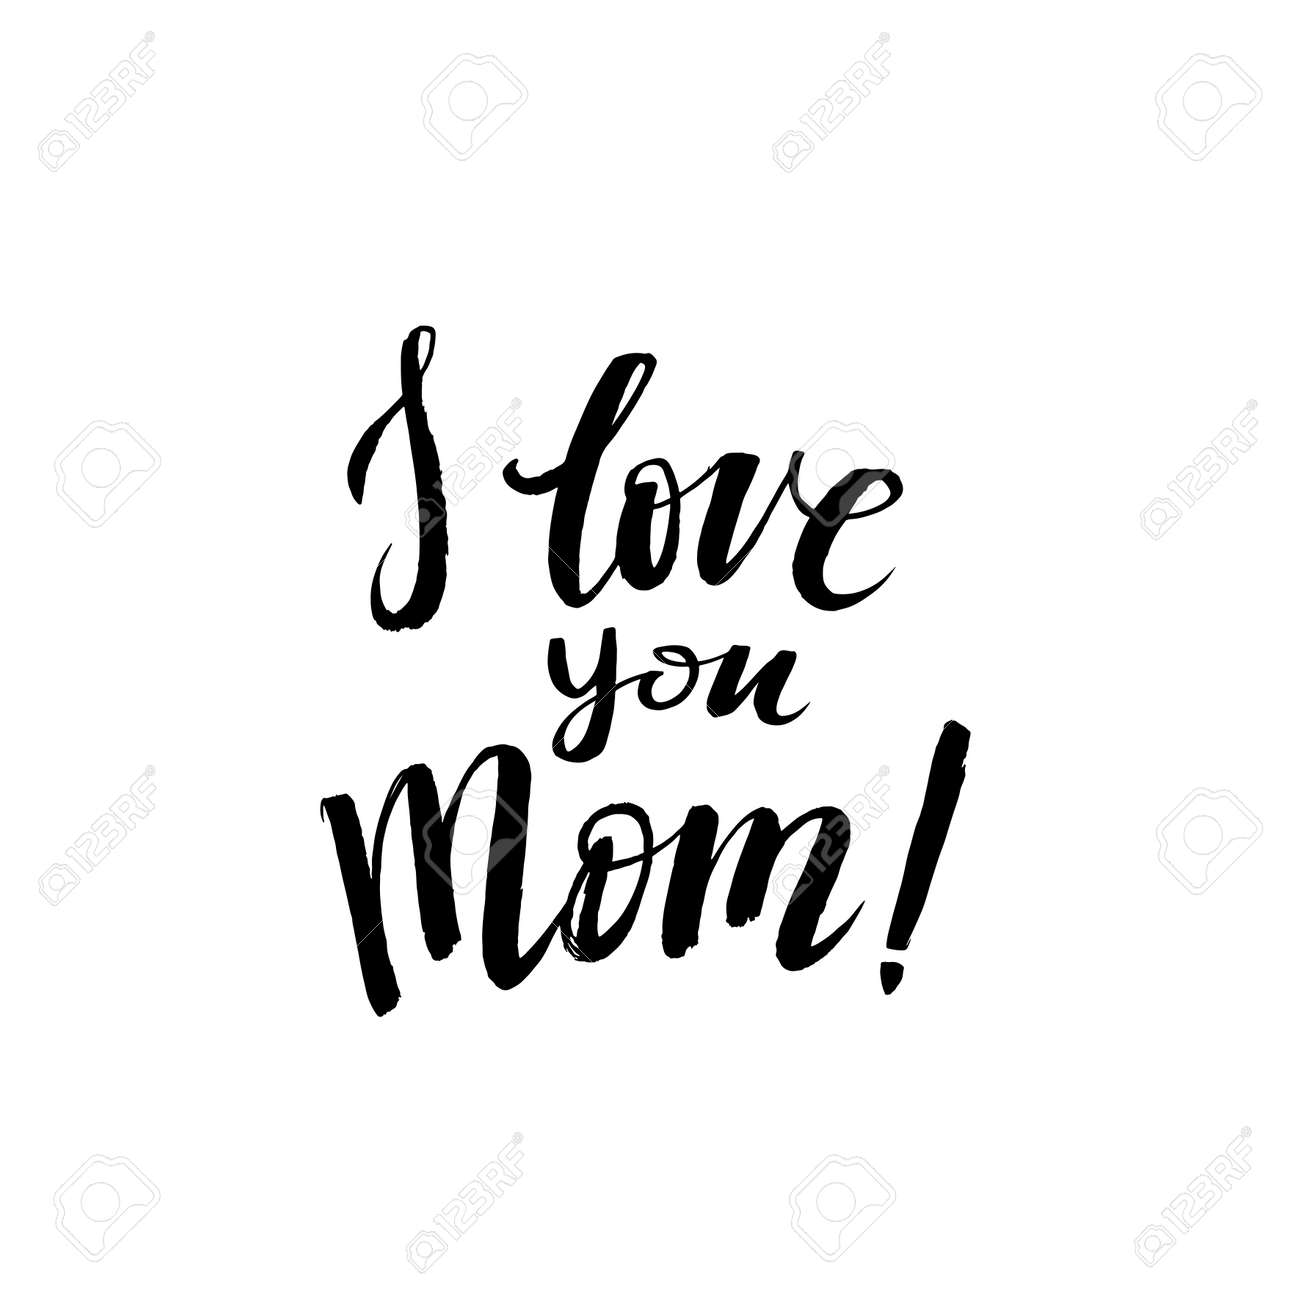 I love you Mom. Happy Mother's Day Greeting Card. Black Calligraphy Inscription. - 53410273